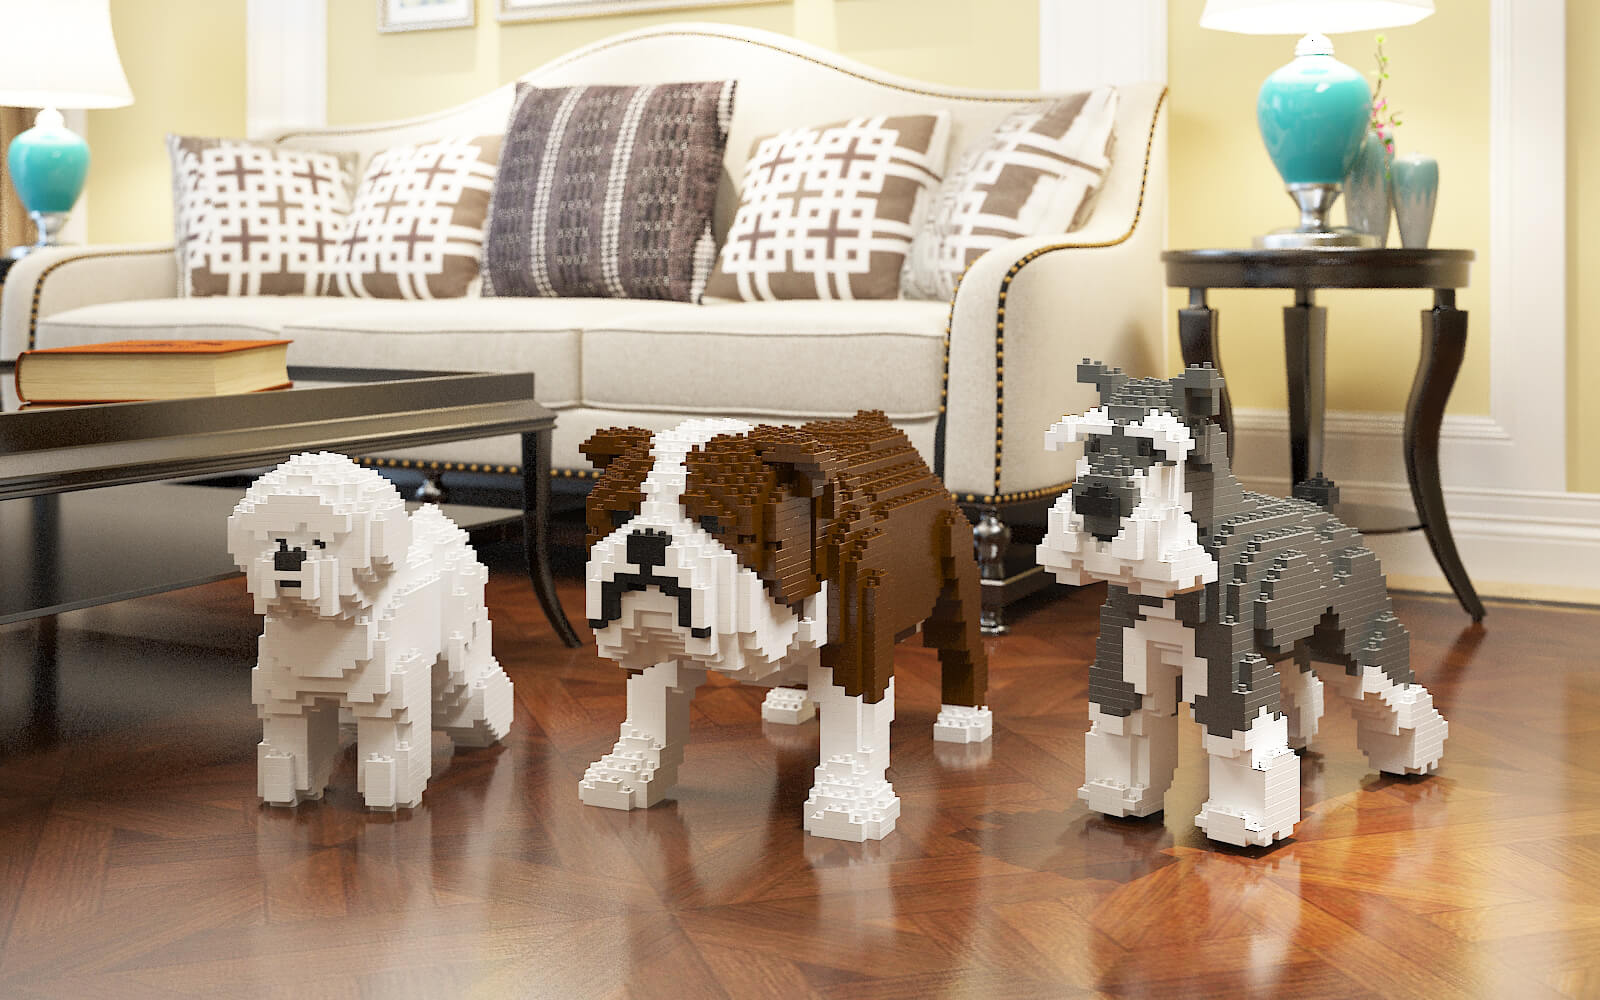 dogs building sets sculptures